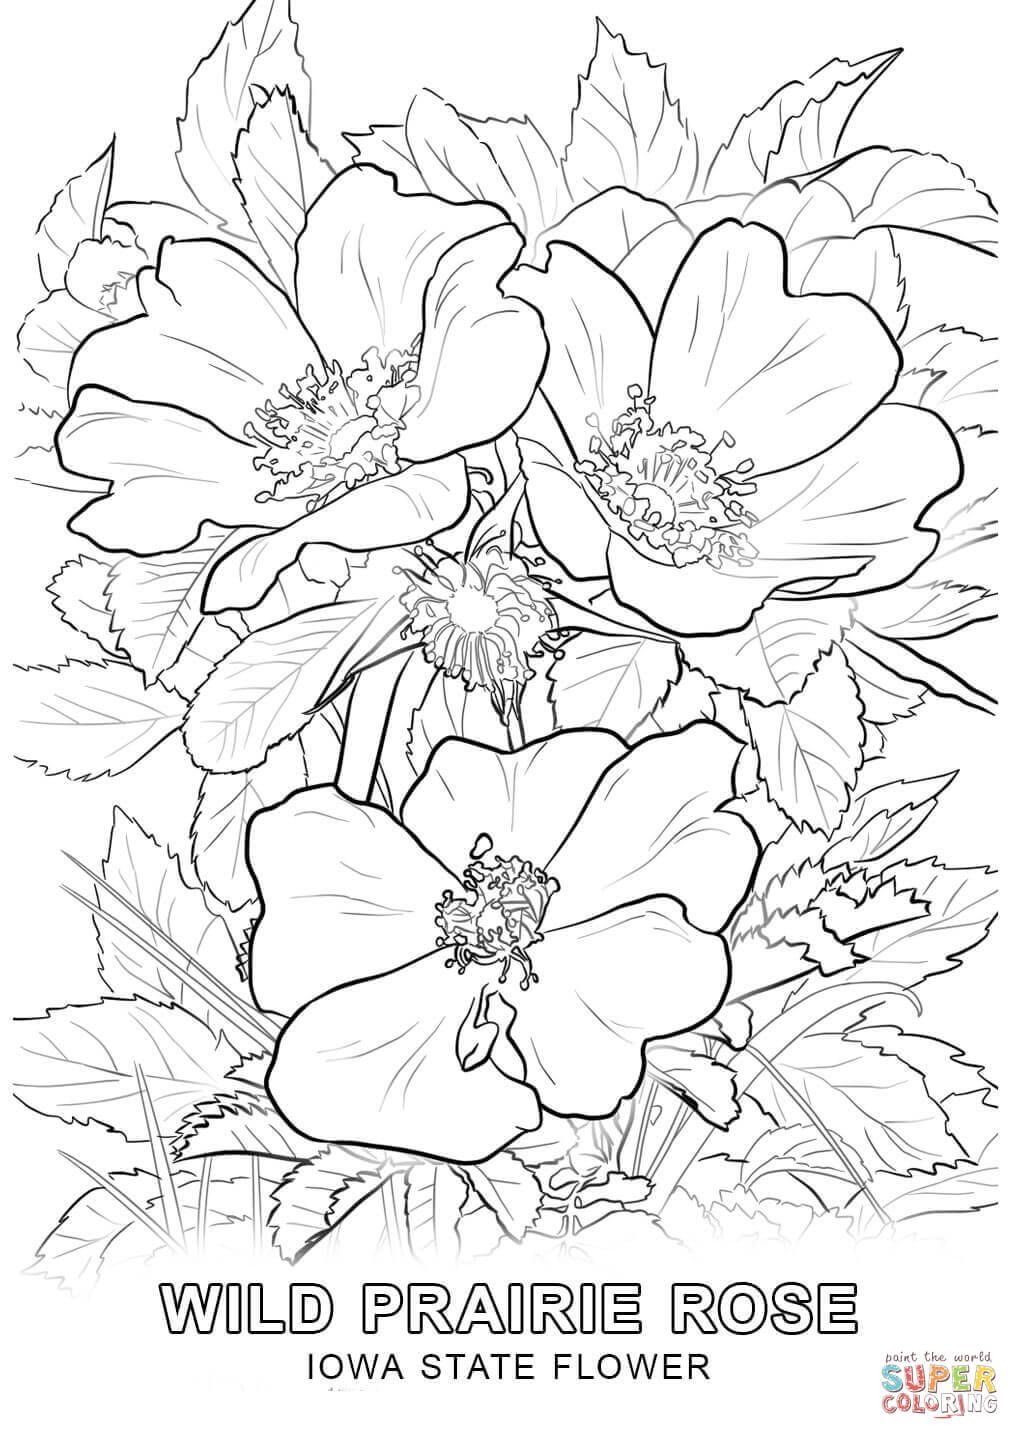 Iowa State Flower coloring page | Free Printable Coloring Pages ...